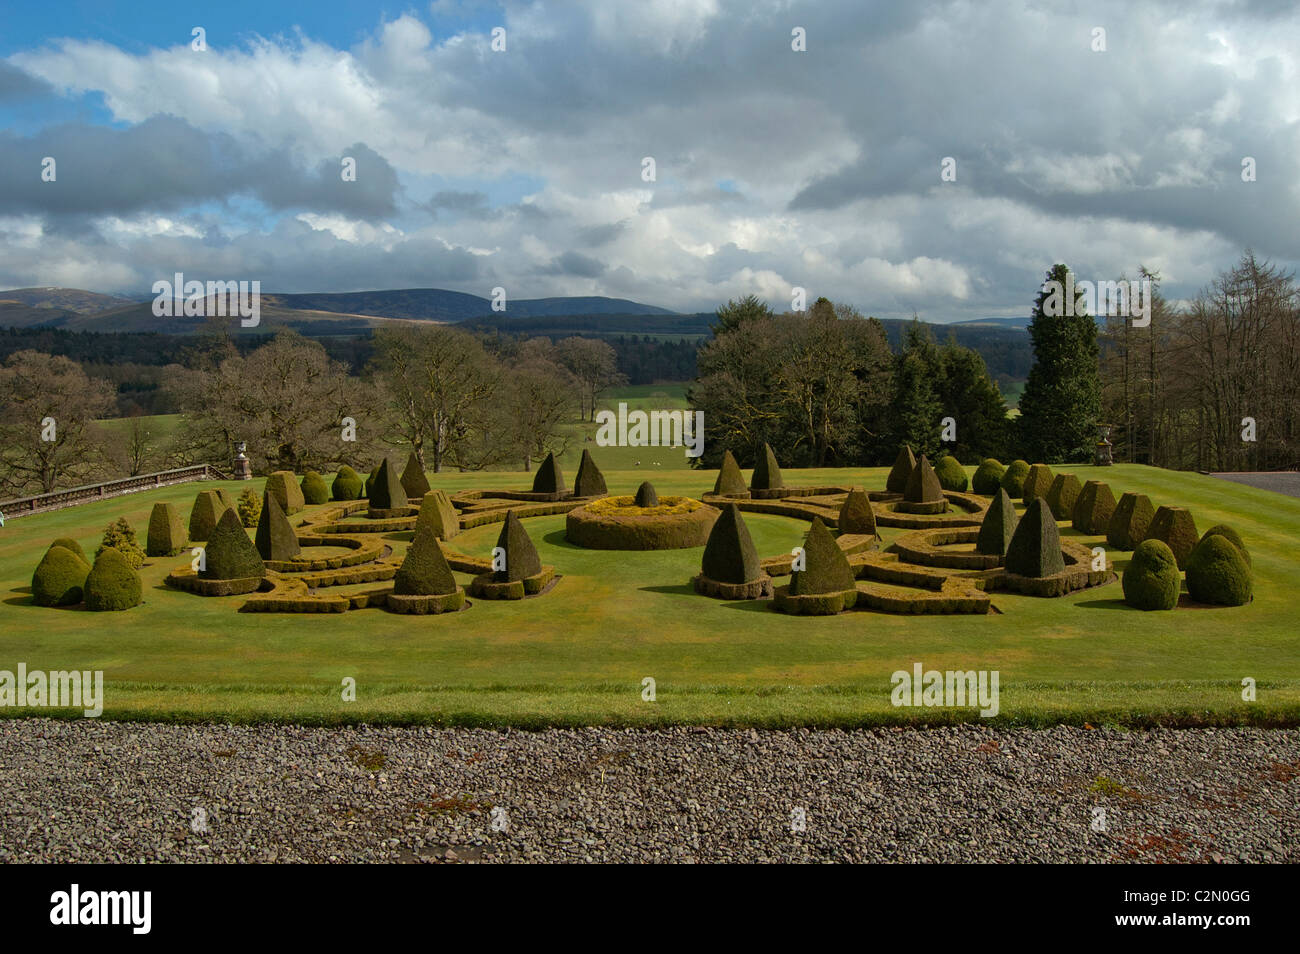 View of the gardens at Drumlanrig castle - Stock Image